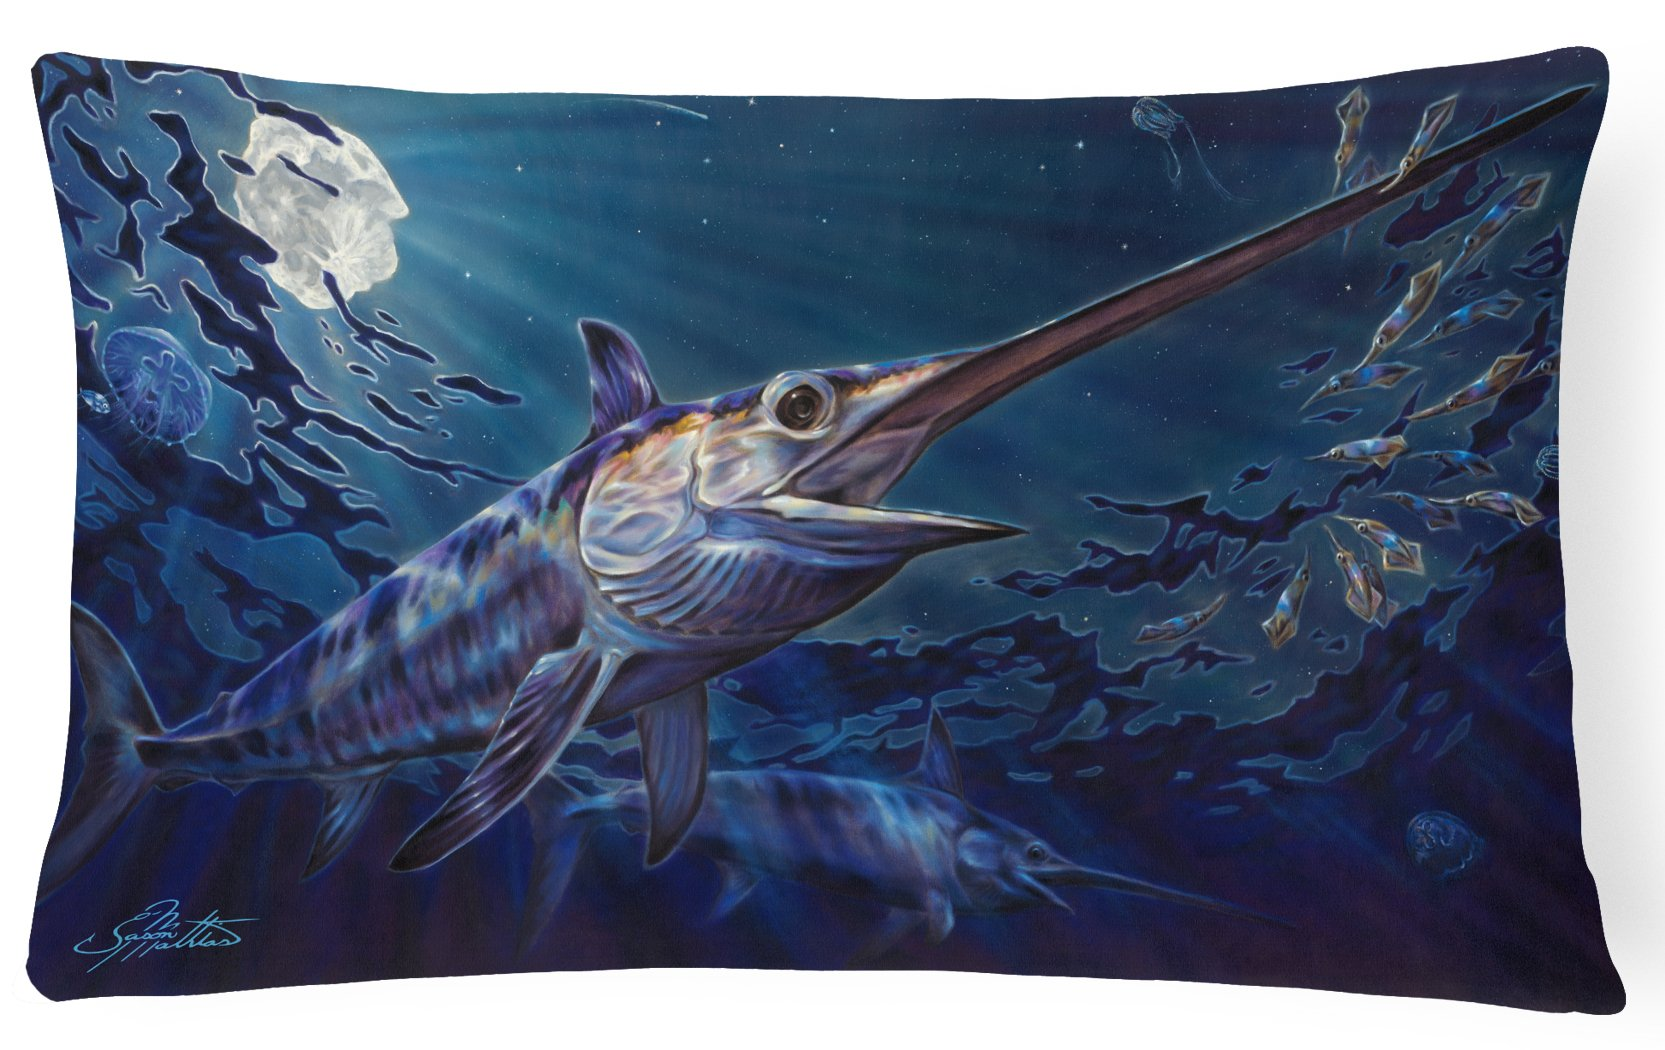 Prince Of Darkness Swordfish Canvas Fabric Decorative Pillow JMA2006PW1216 by Caroline's Treasures